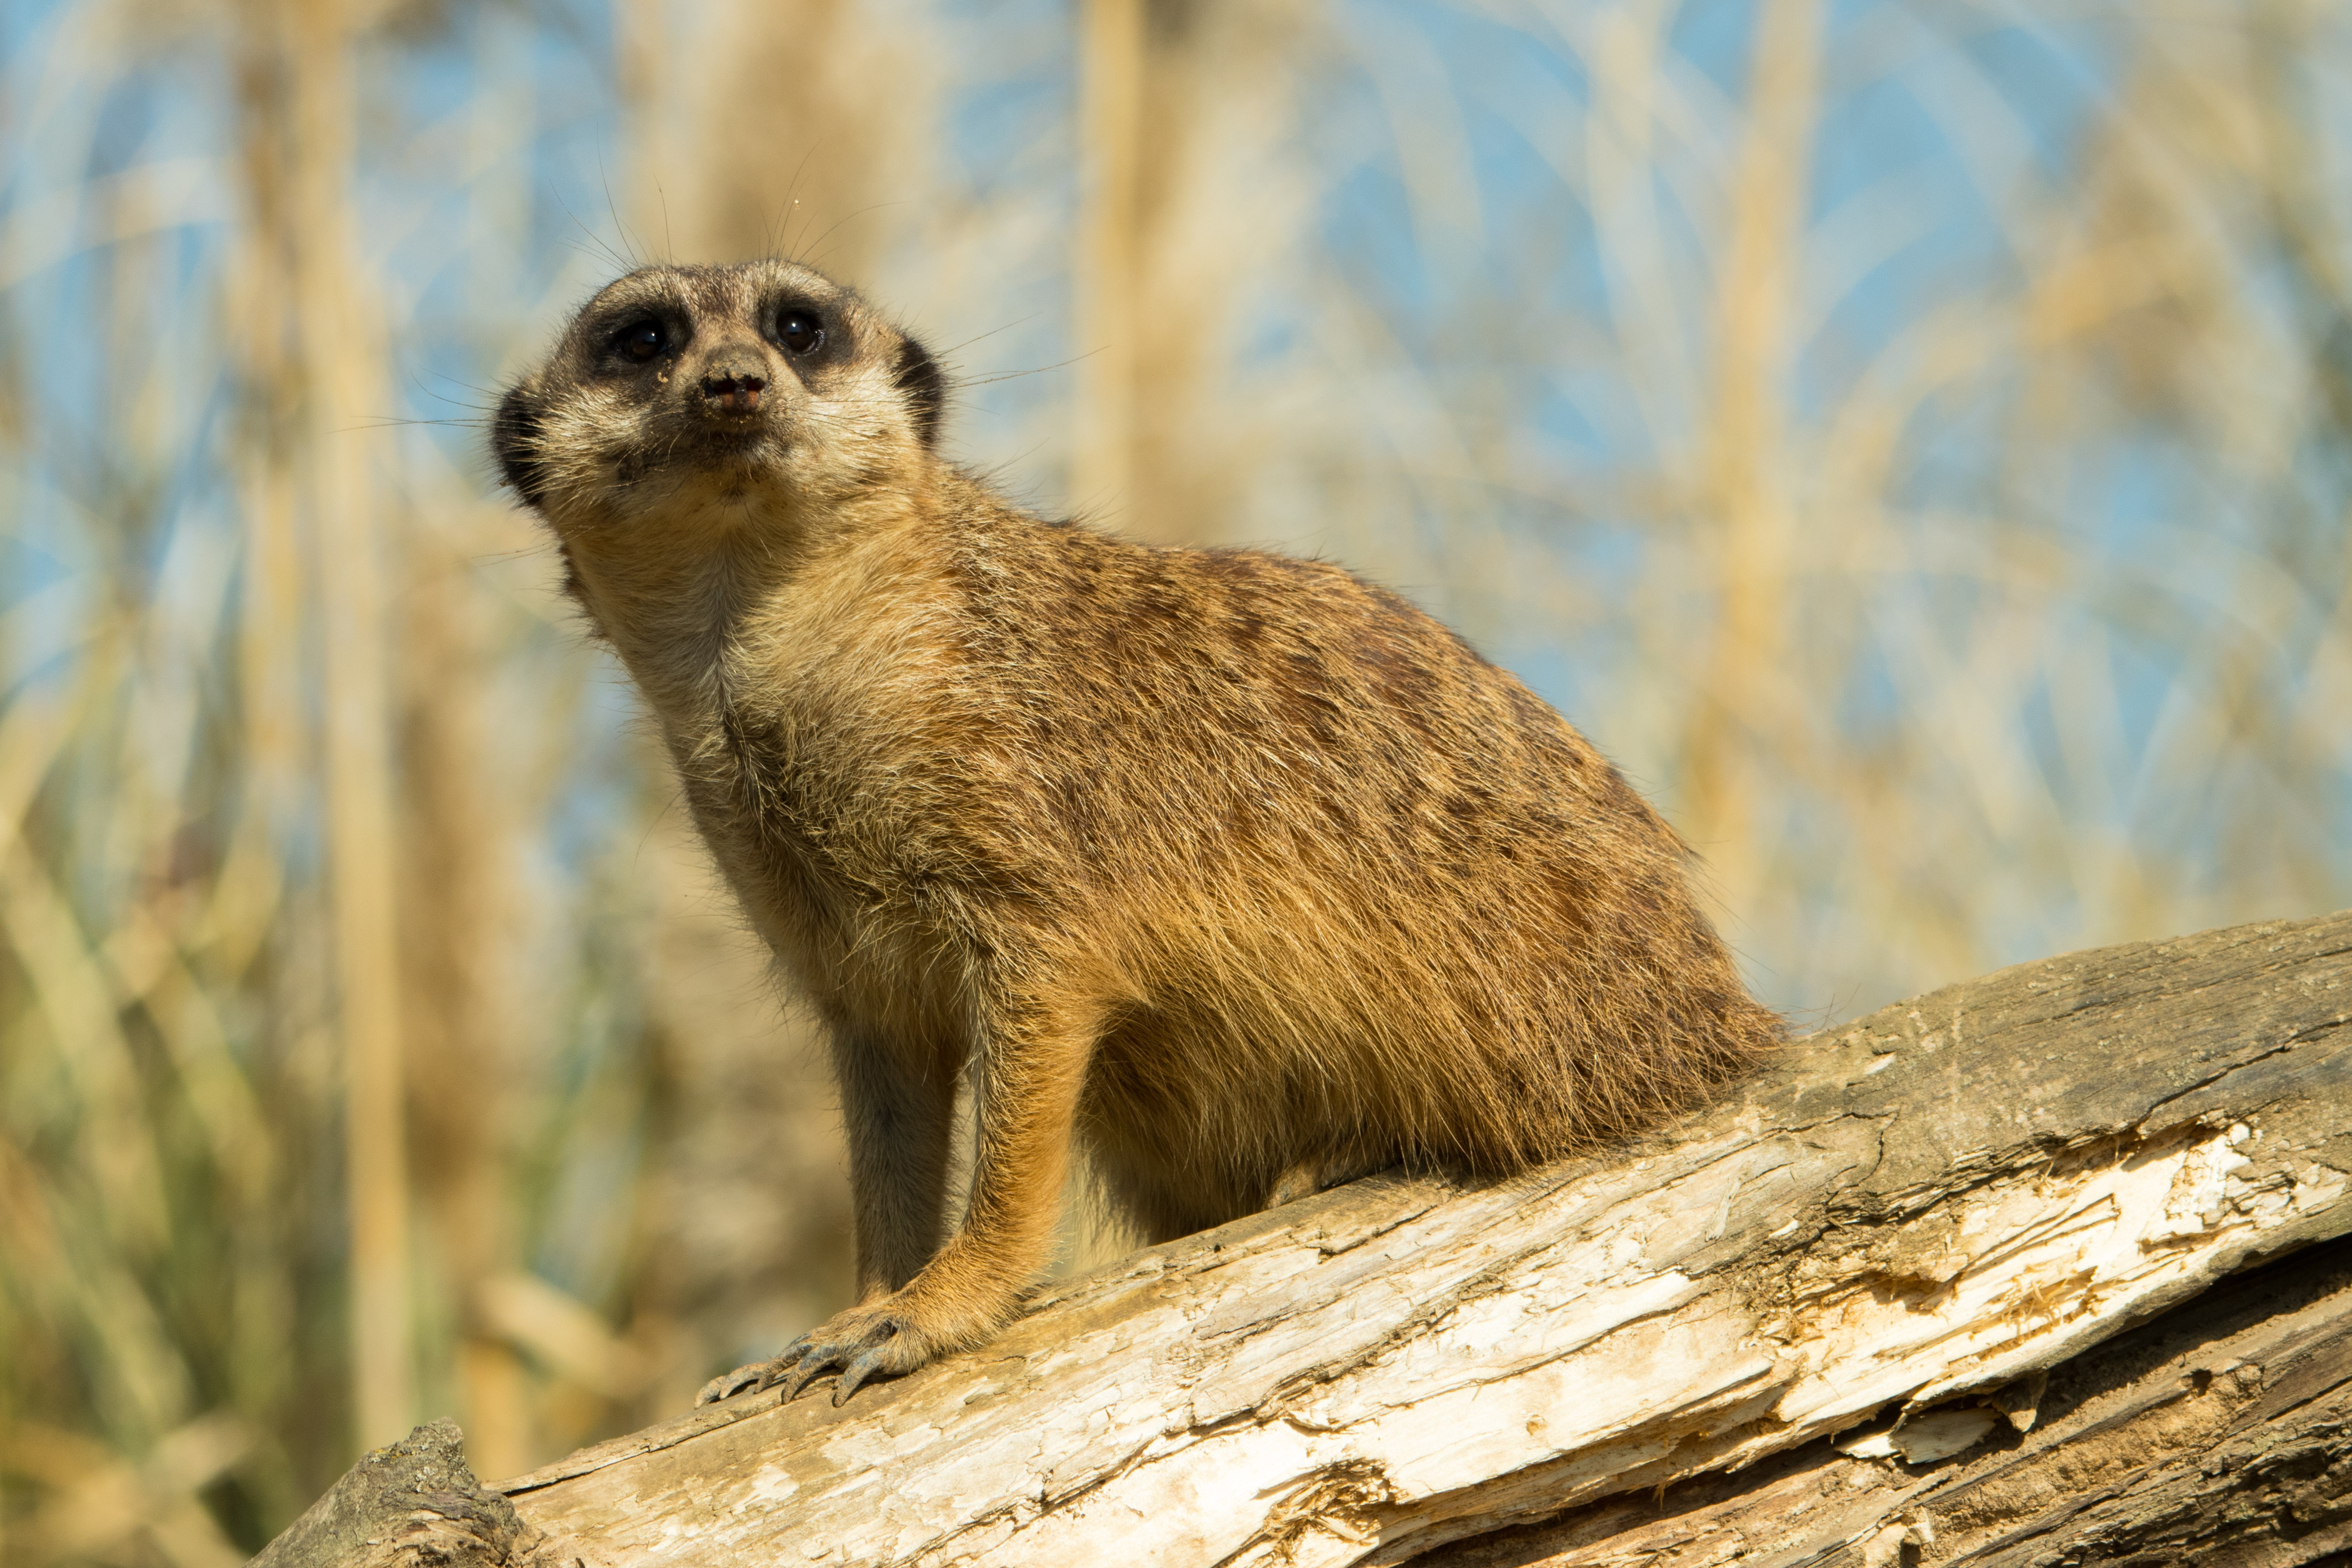 101476 download wallpaper Animals, Meerkat, Surikat, Animal, Sight, Opinion screensavers and pictures for free